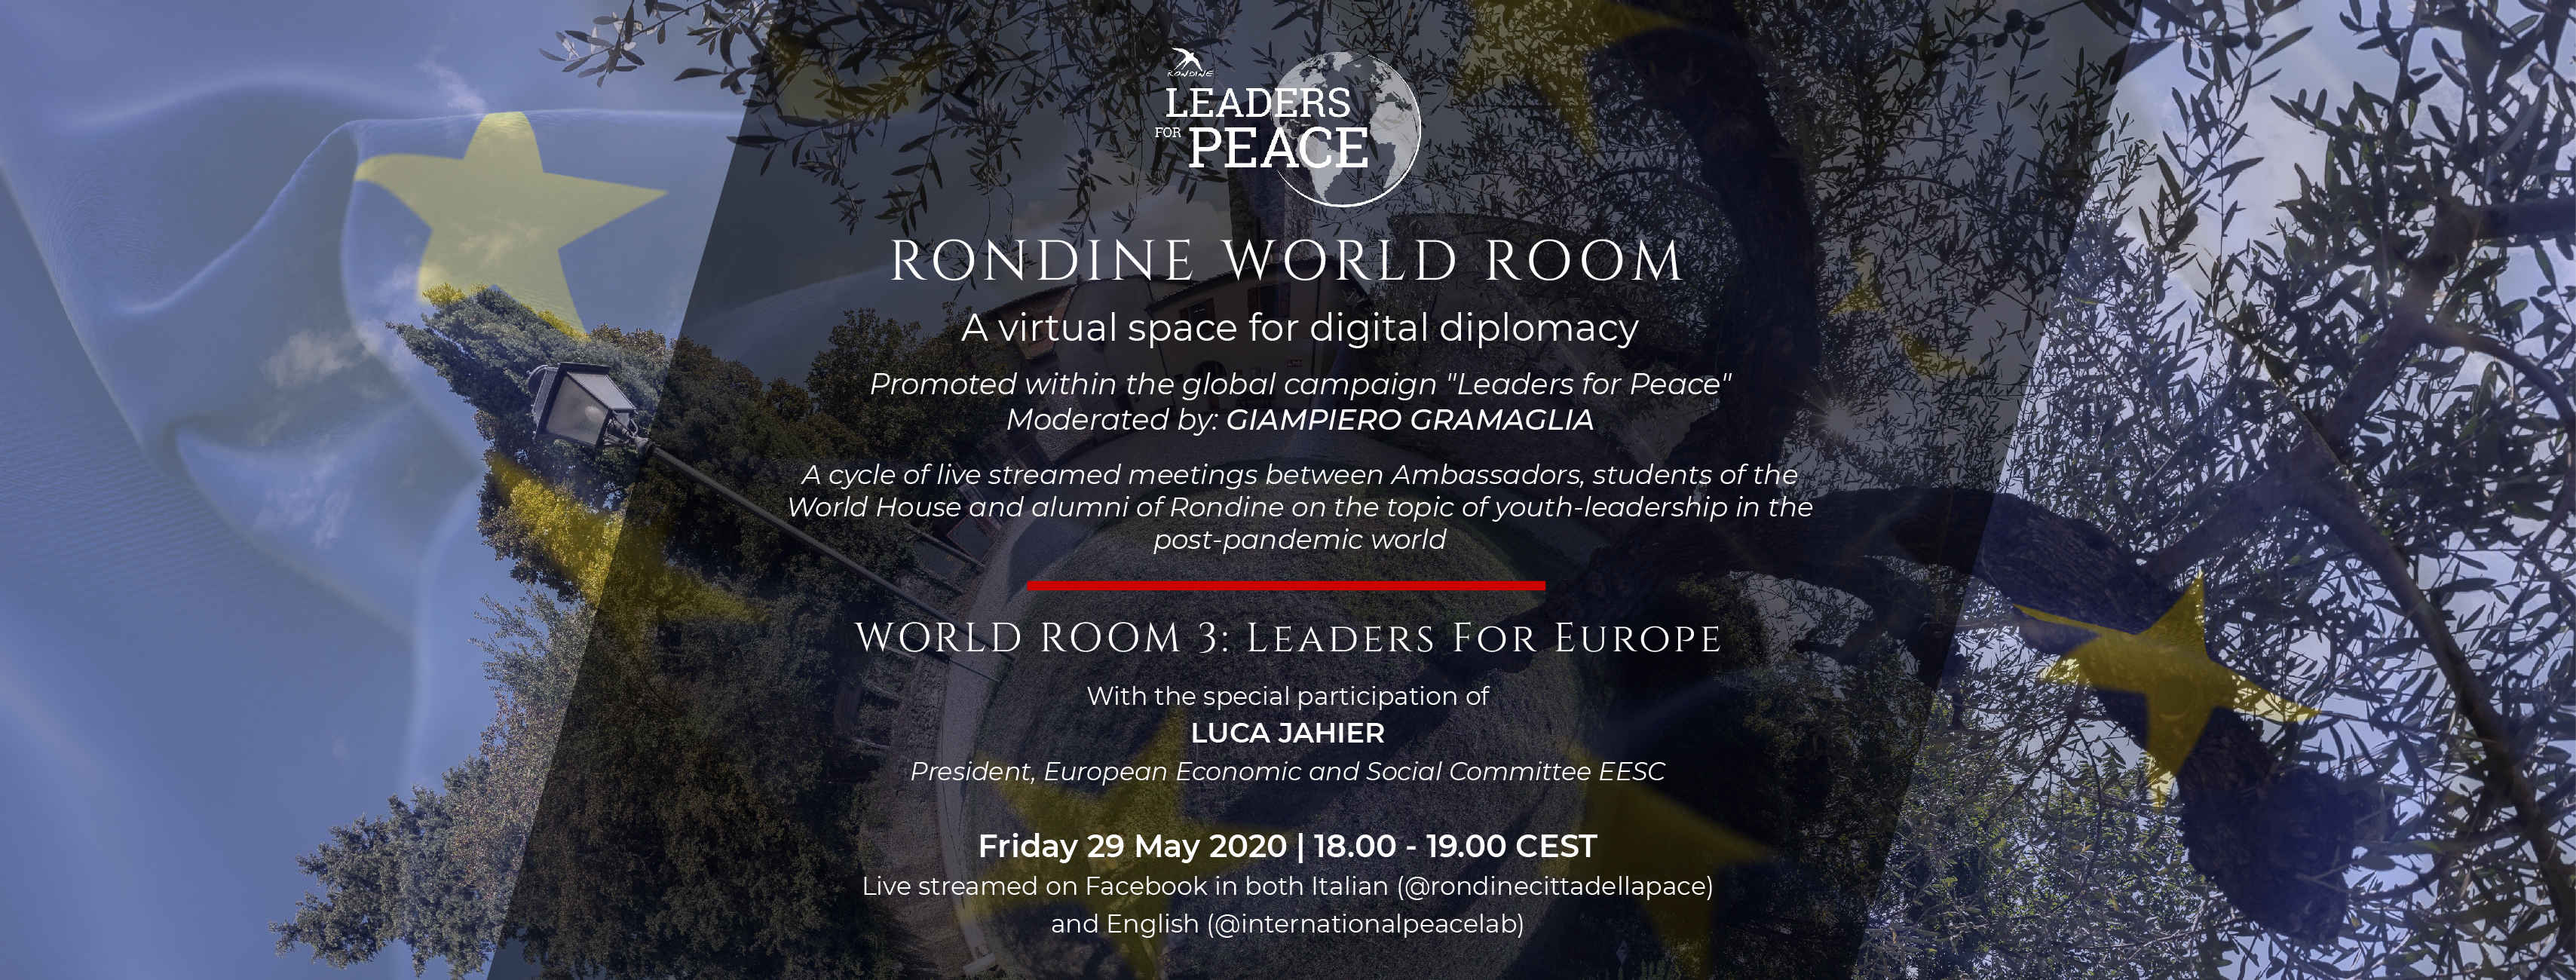 """Leaders for Europe"". Luca Jahier (EESC) guest of honour of the third meeting of Rondine World Room dedicated to Europe"